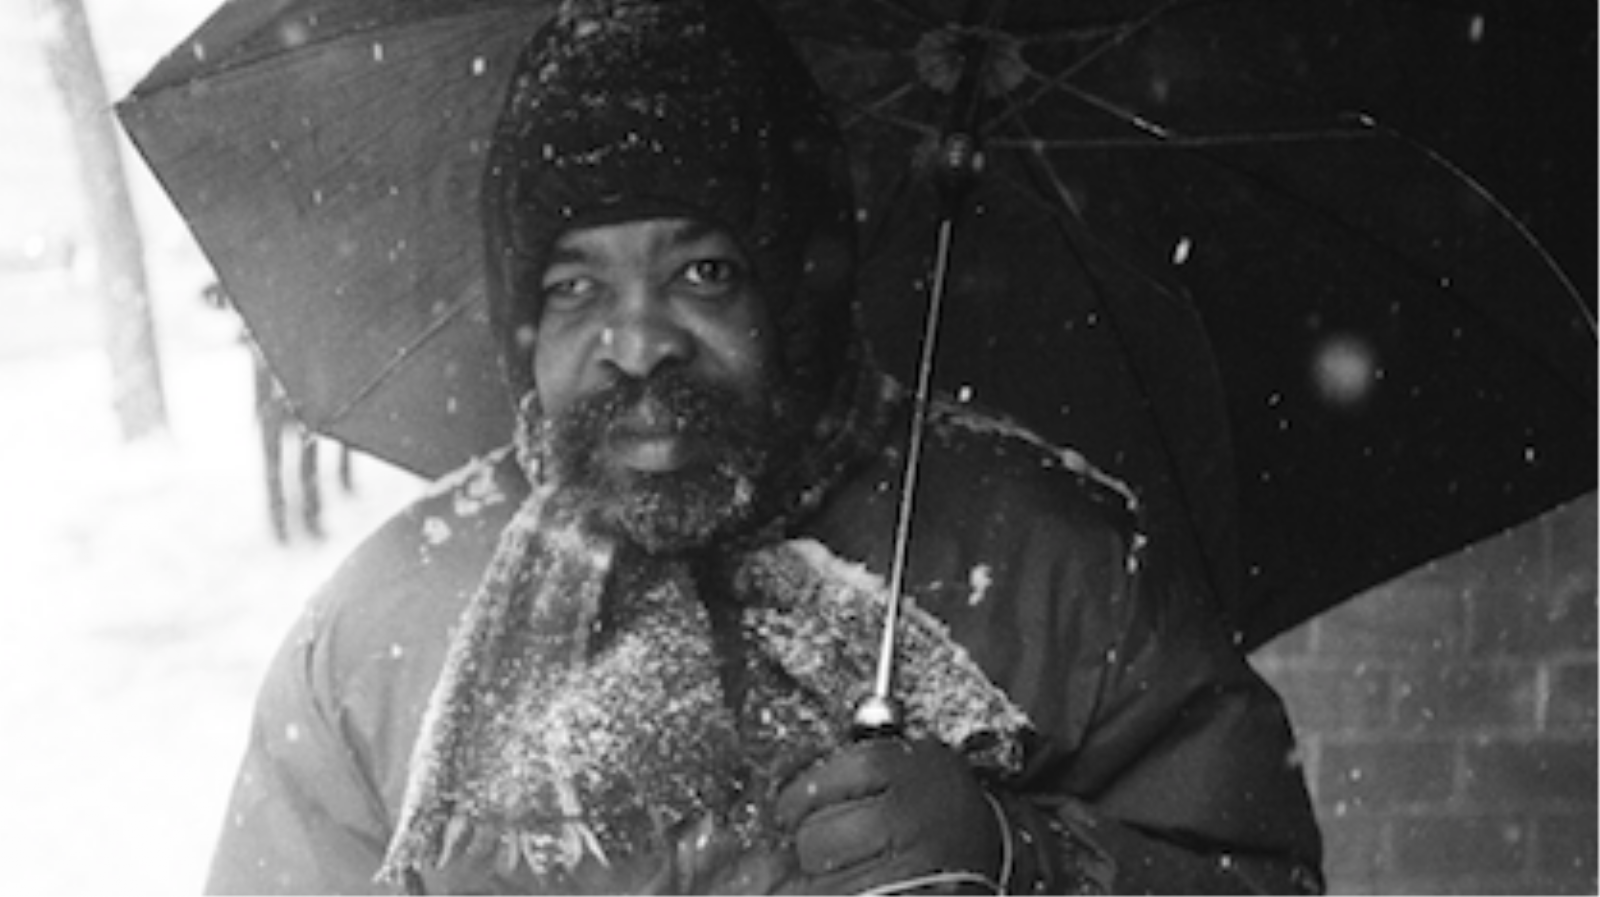 Portraits of New Yorkers Whom the Rest of the City Ignores